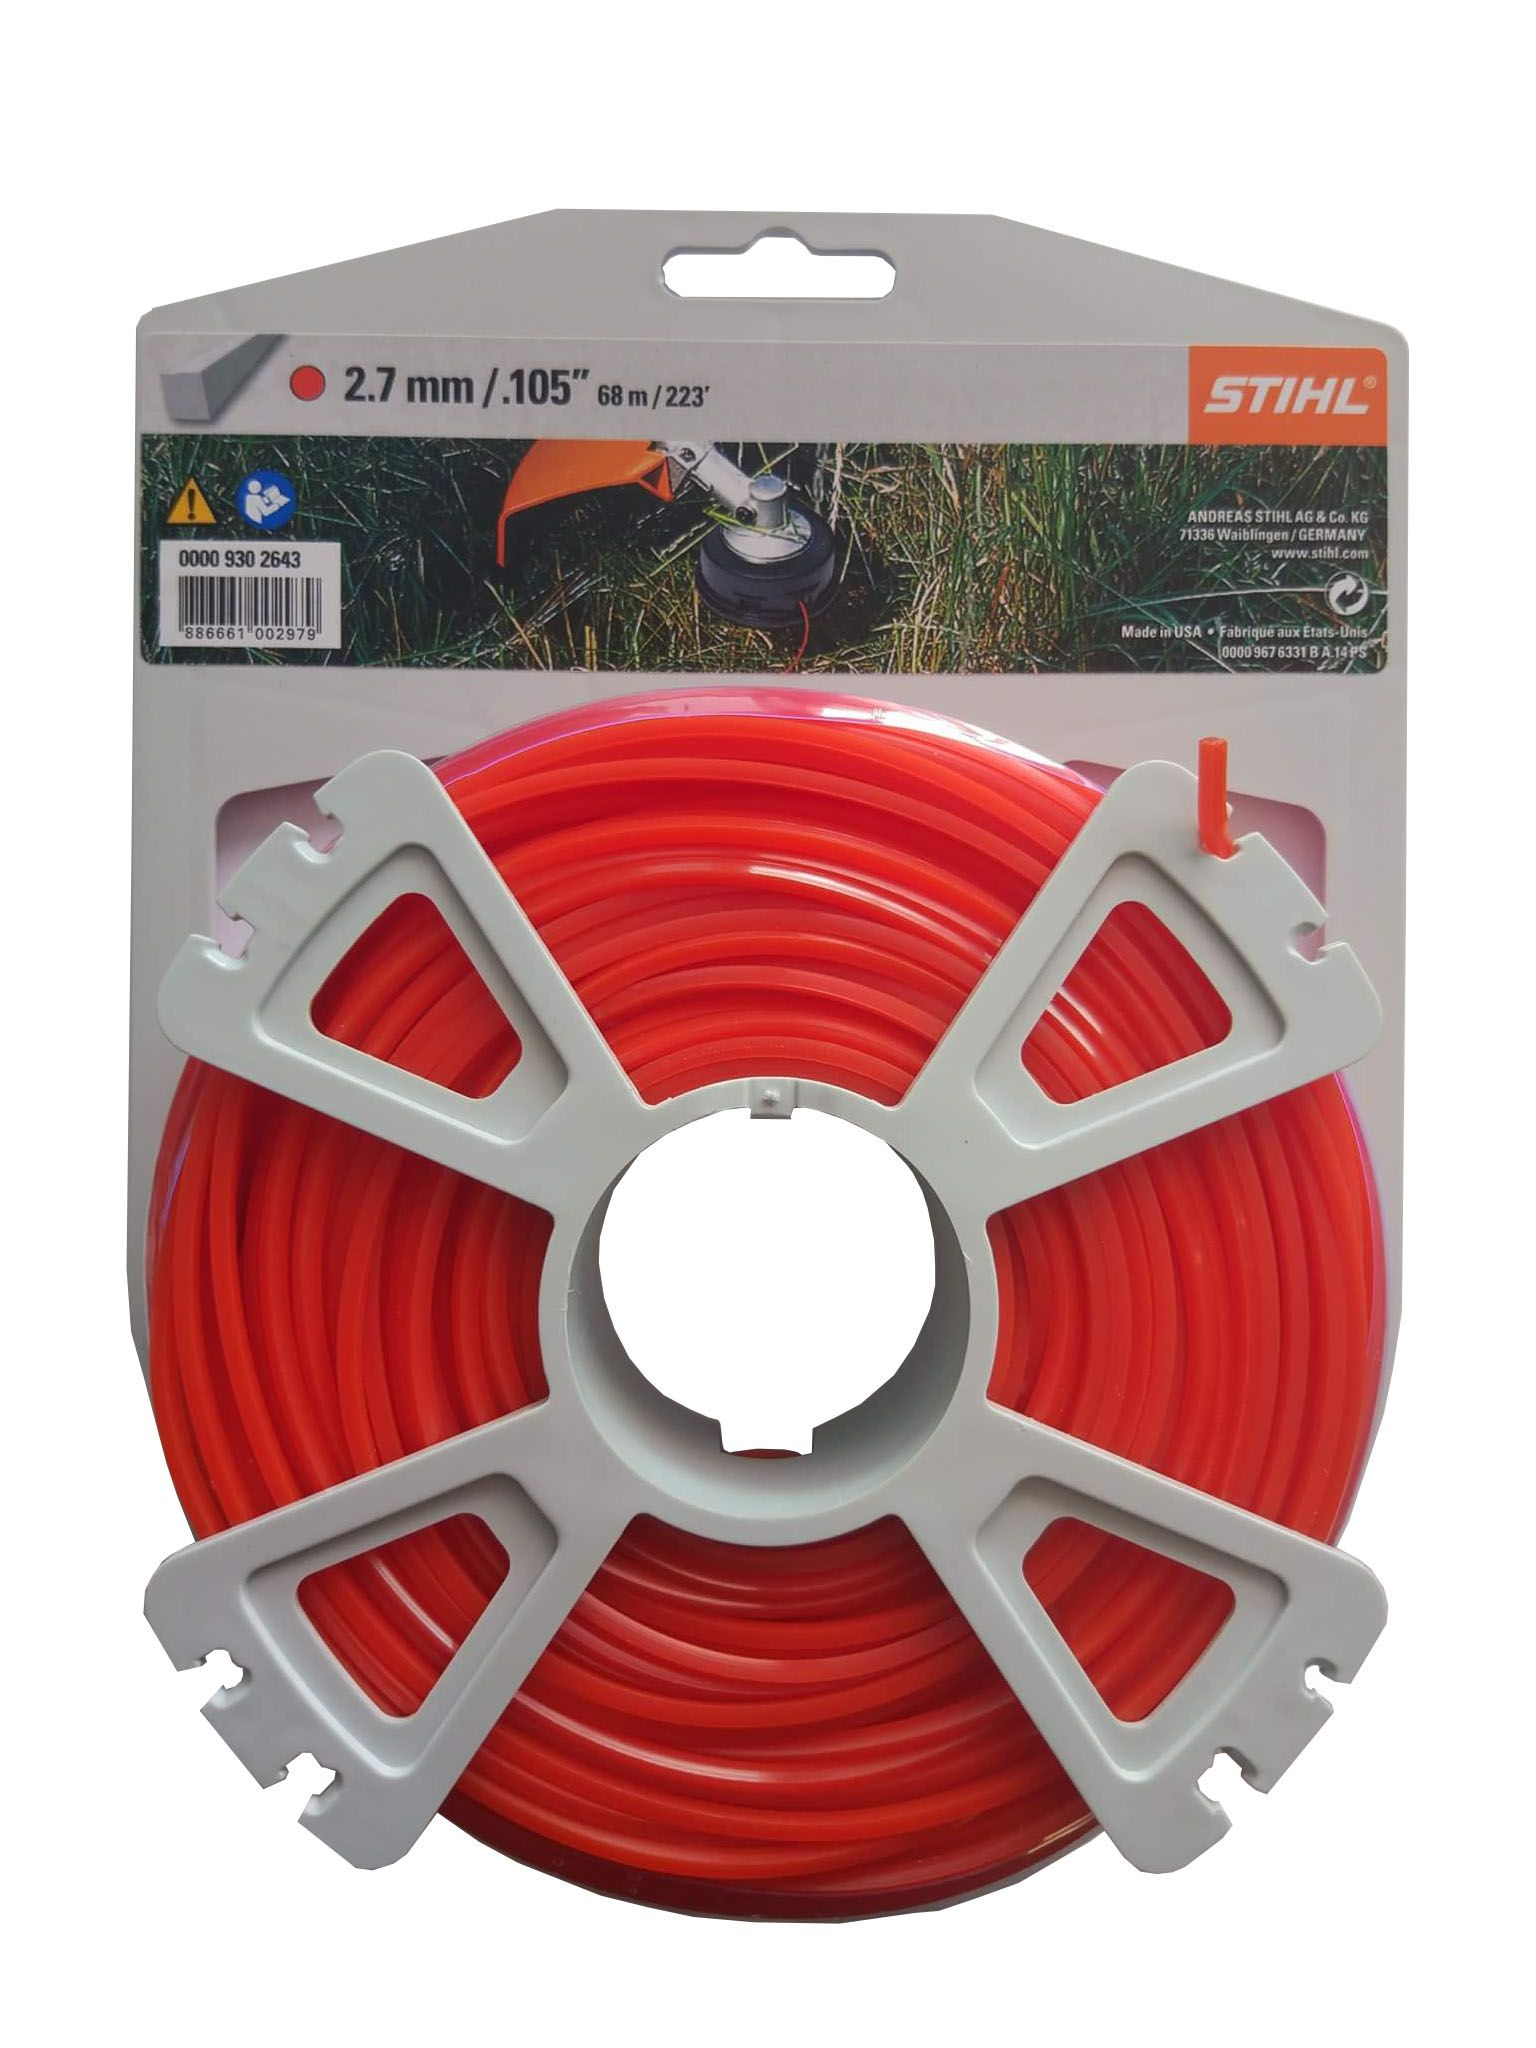 Genuine Stihl Trimmer line SQUARE (RED) 2.7mm x 68M Product Code 0000 930 2643